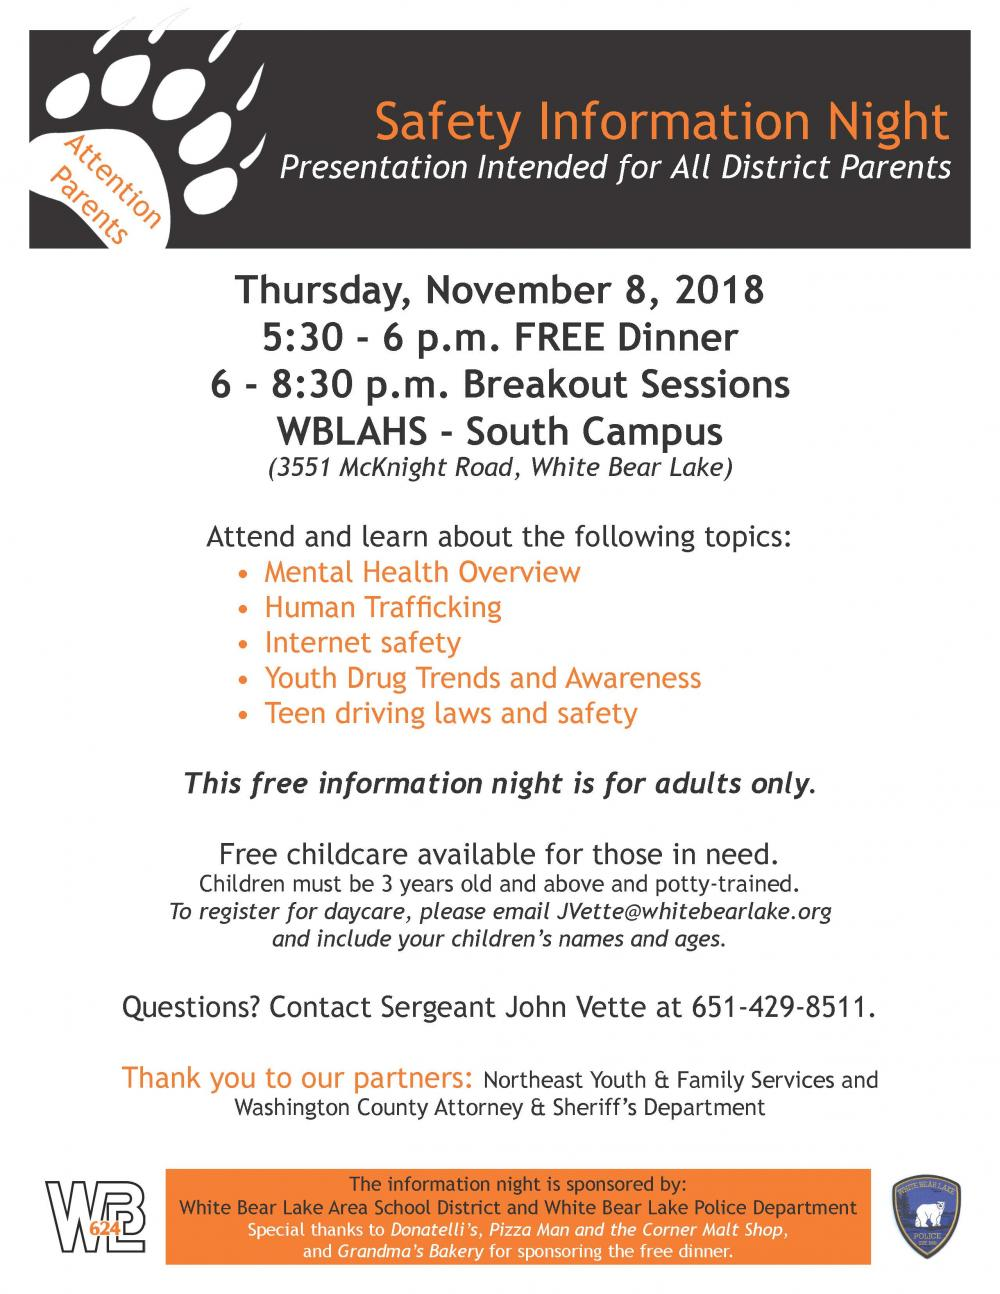 Image Of The Flyer For Safety Information Night